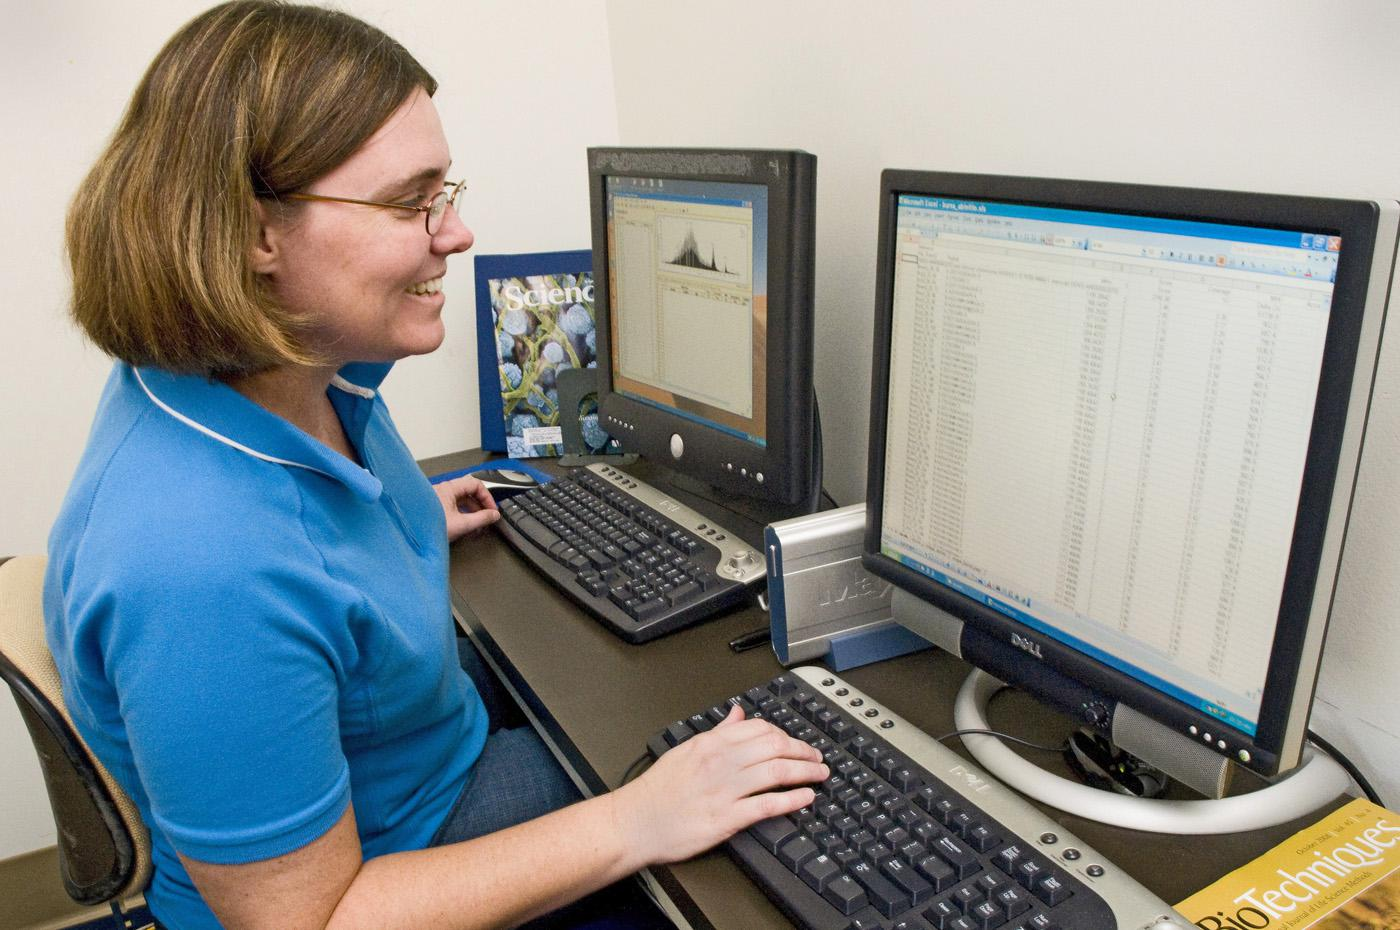 Fiona McCarthy, a biocuration specialist with the Mississippi State University College of Veterinary Medicine, examines protein expression data that may indicate how the immune system develops in chickens. (Photo by Tom Thompson)